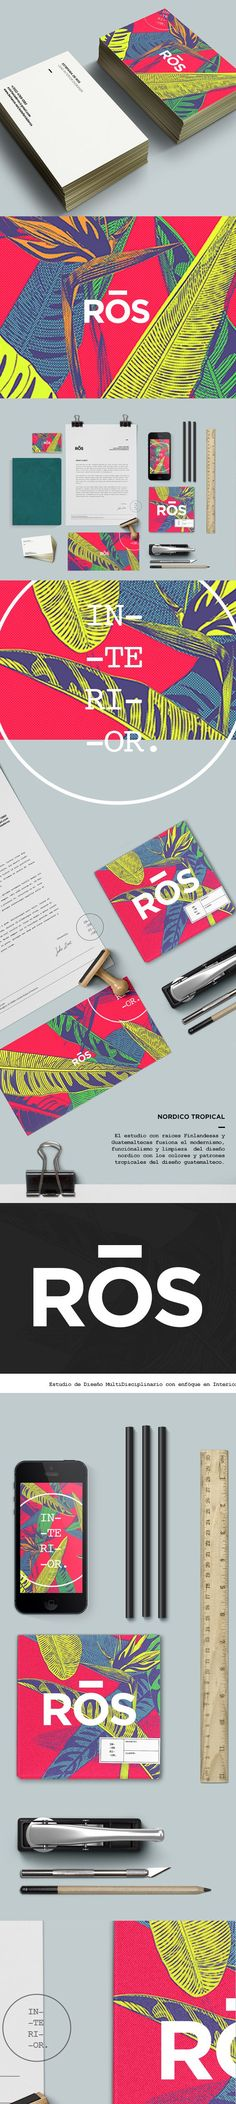 "Branding Concept for Ros Interior Design, Ros is a an Interior Design Studio based in Guatemala lead by Estefania de Ros and Gustavo Quintana. The Studio has a unique Style that se defines as ""Nordico Tropical"" a fusion between the Modernism and Functionalism of Nordic Desing, with the Colorful Tropical Influence of Guatemalan Design, Ros projects are a mixture of quirkyness and Elegance that range from Interior, Furniture, Styling and Landscape Design #branding #identity"